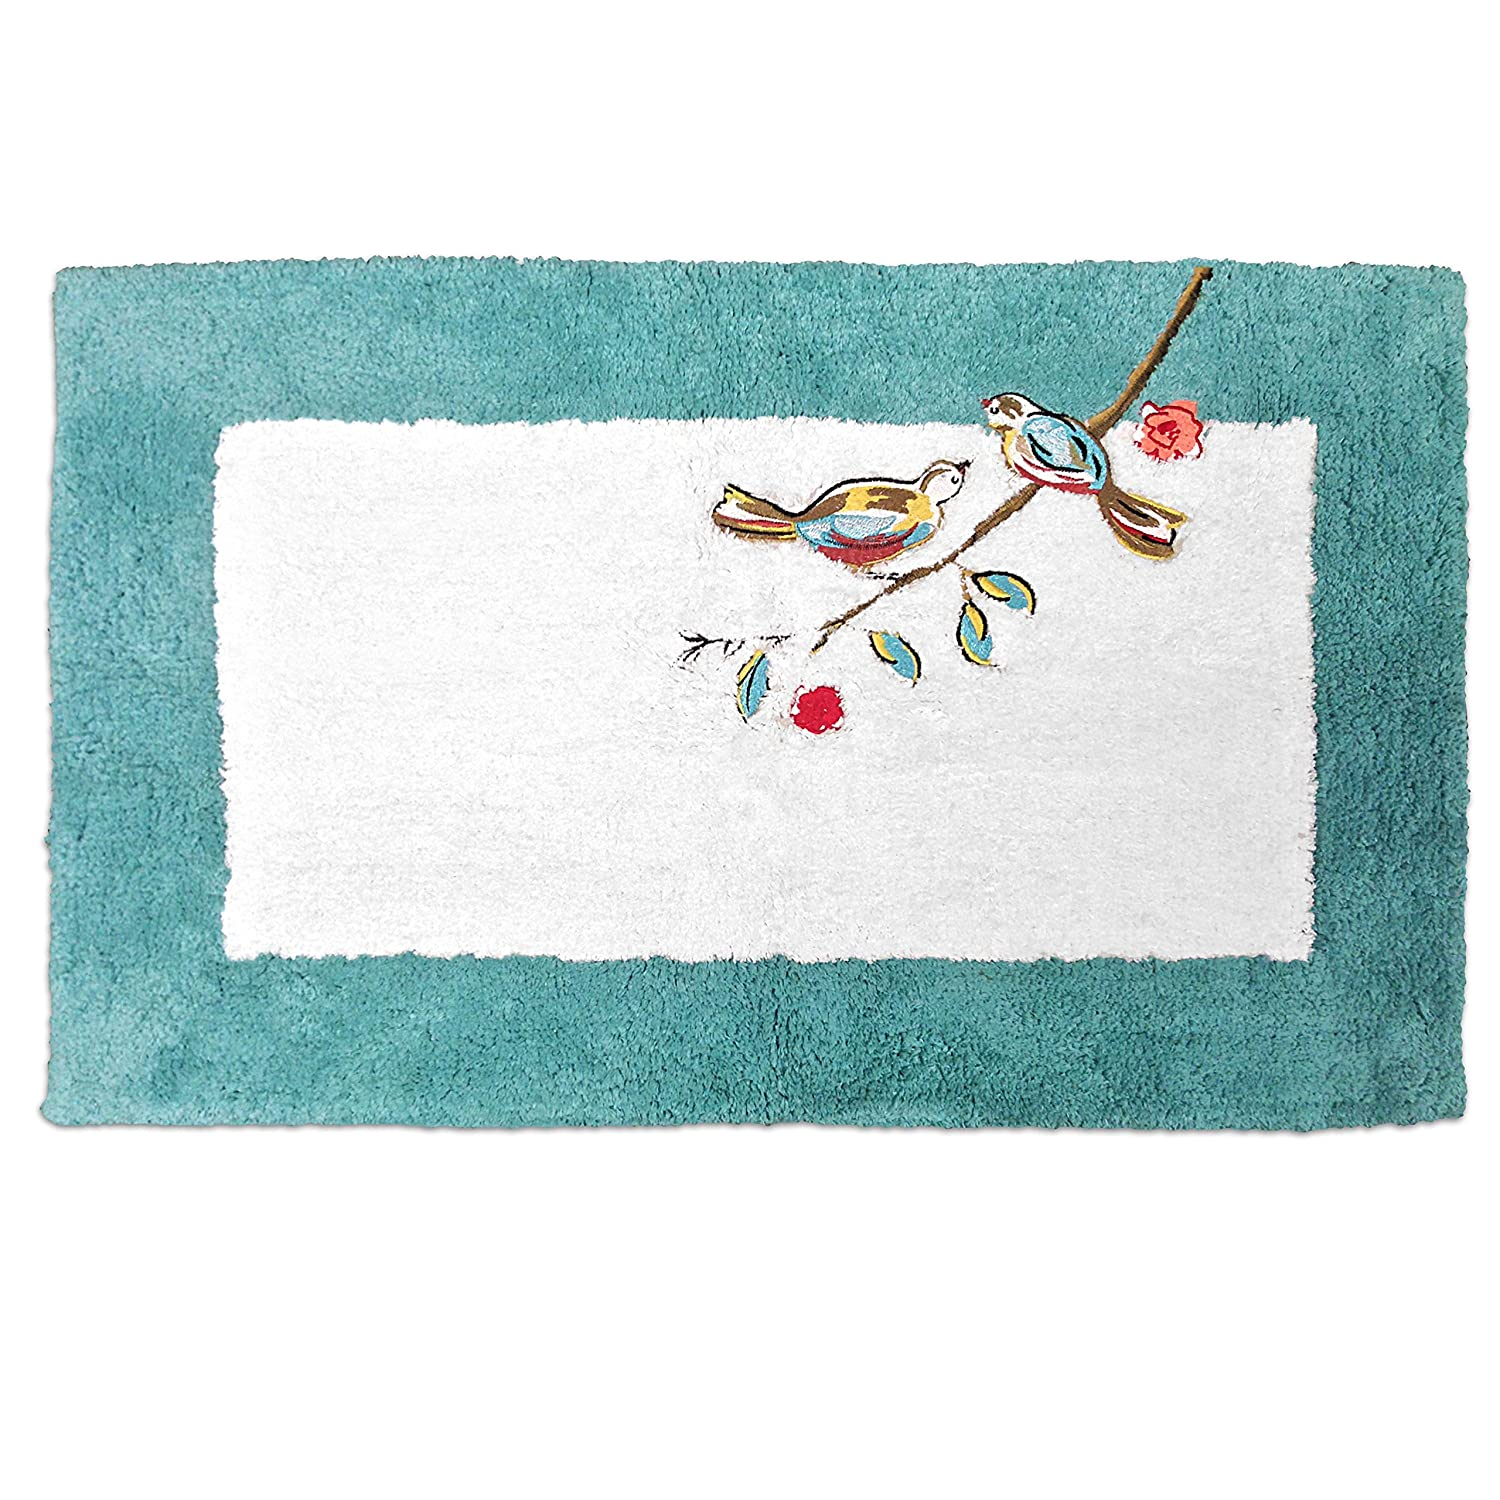 Lenox Simply Fine Chirp Fingertip Towel, Multi-Color Bardwil Linens 047596255001